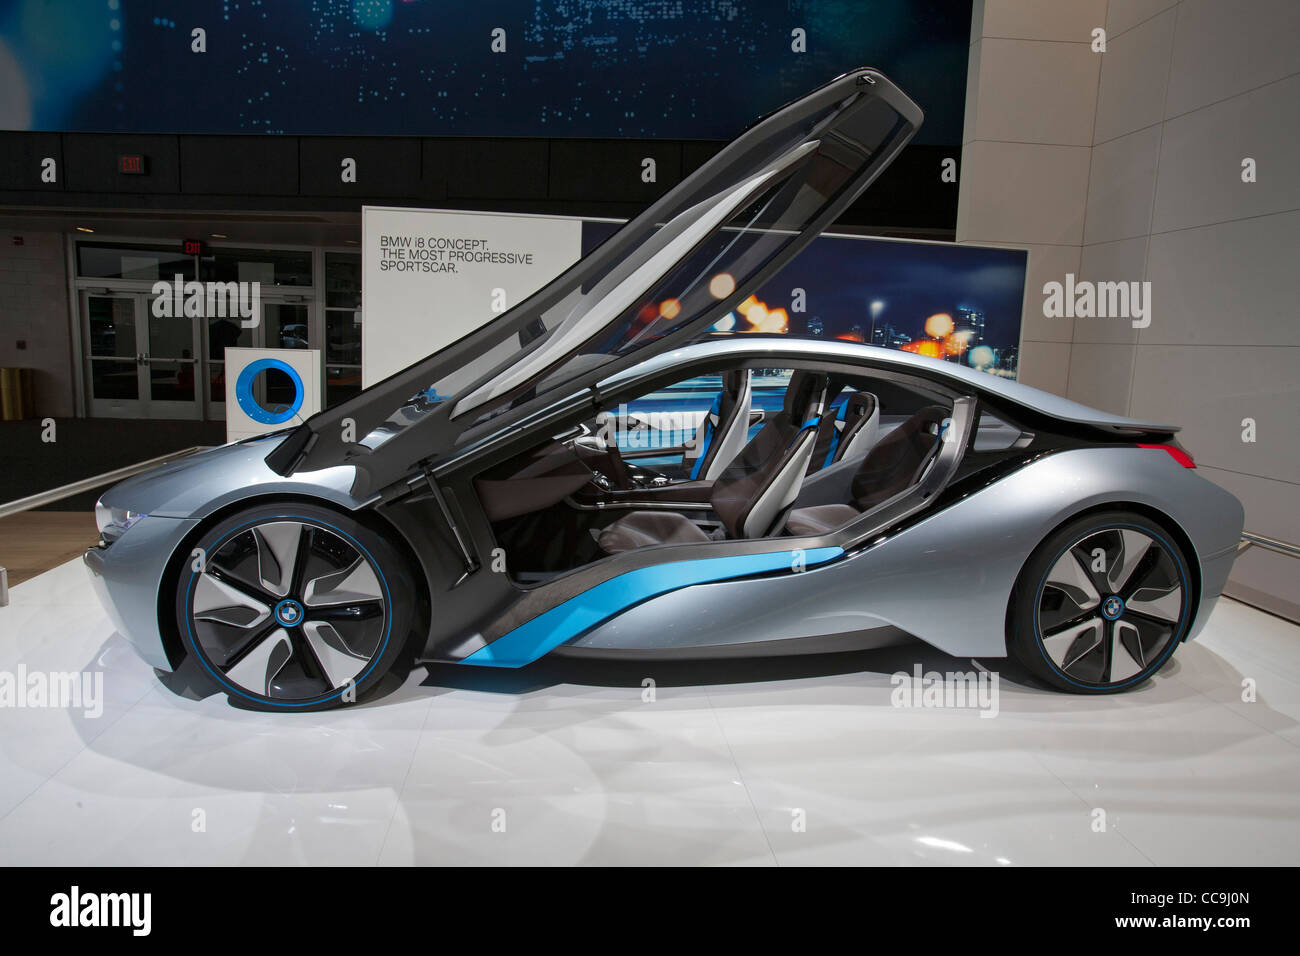 Detroit Michigan The Bmw I8 Plug In Hybrid Concept Car On Display